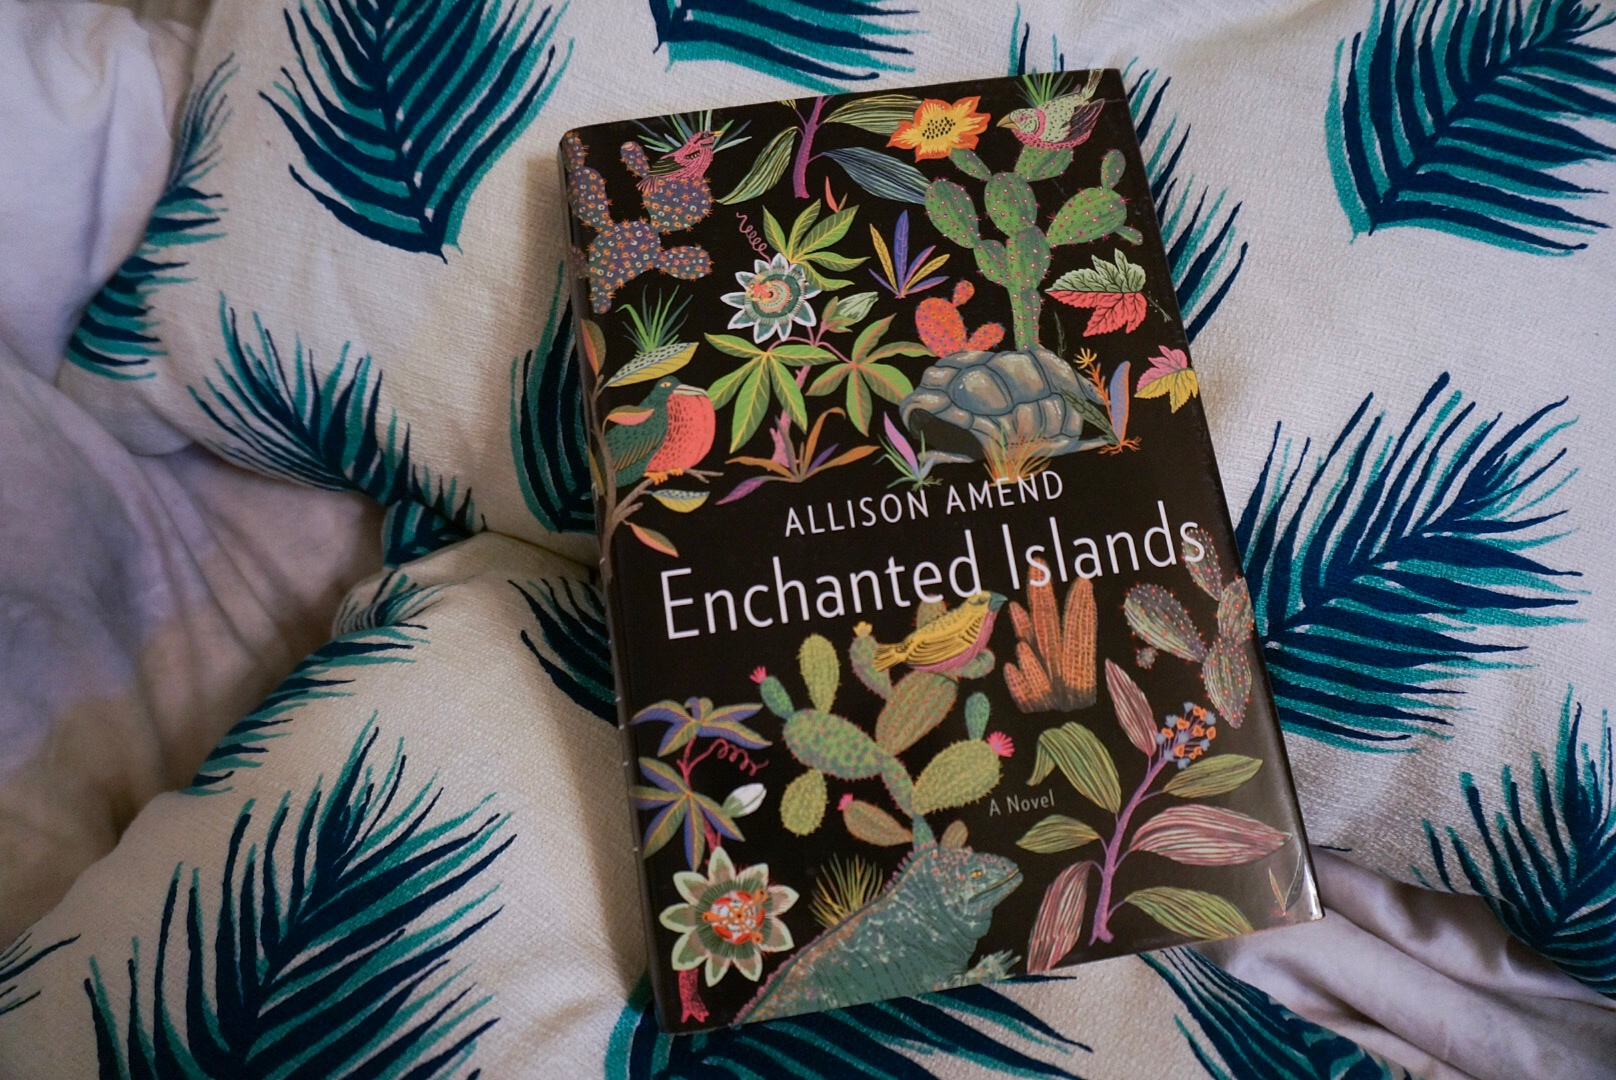 enchanted islands allison amend review